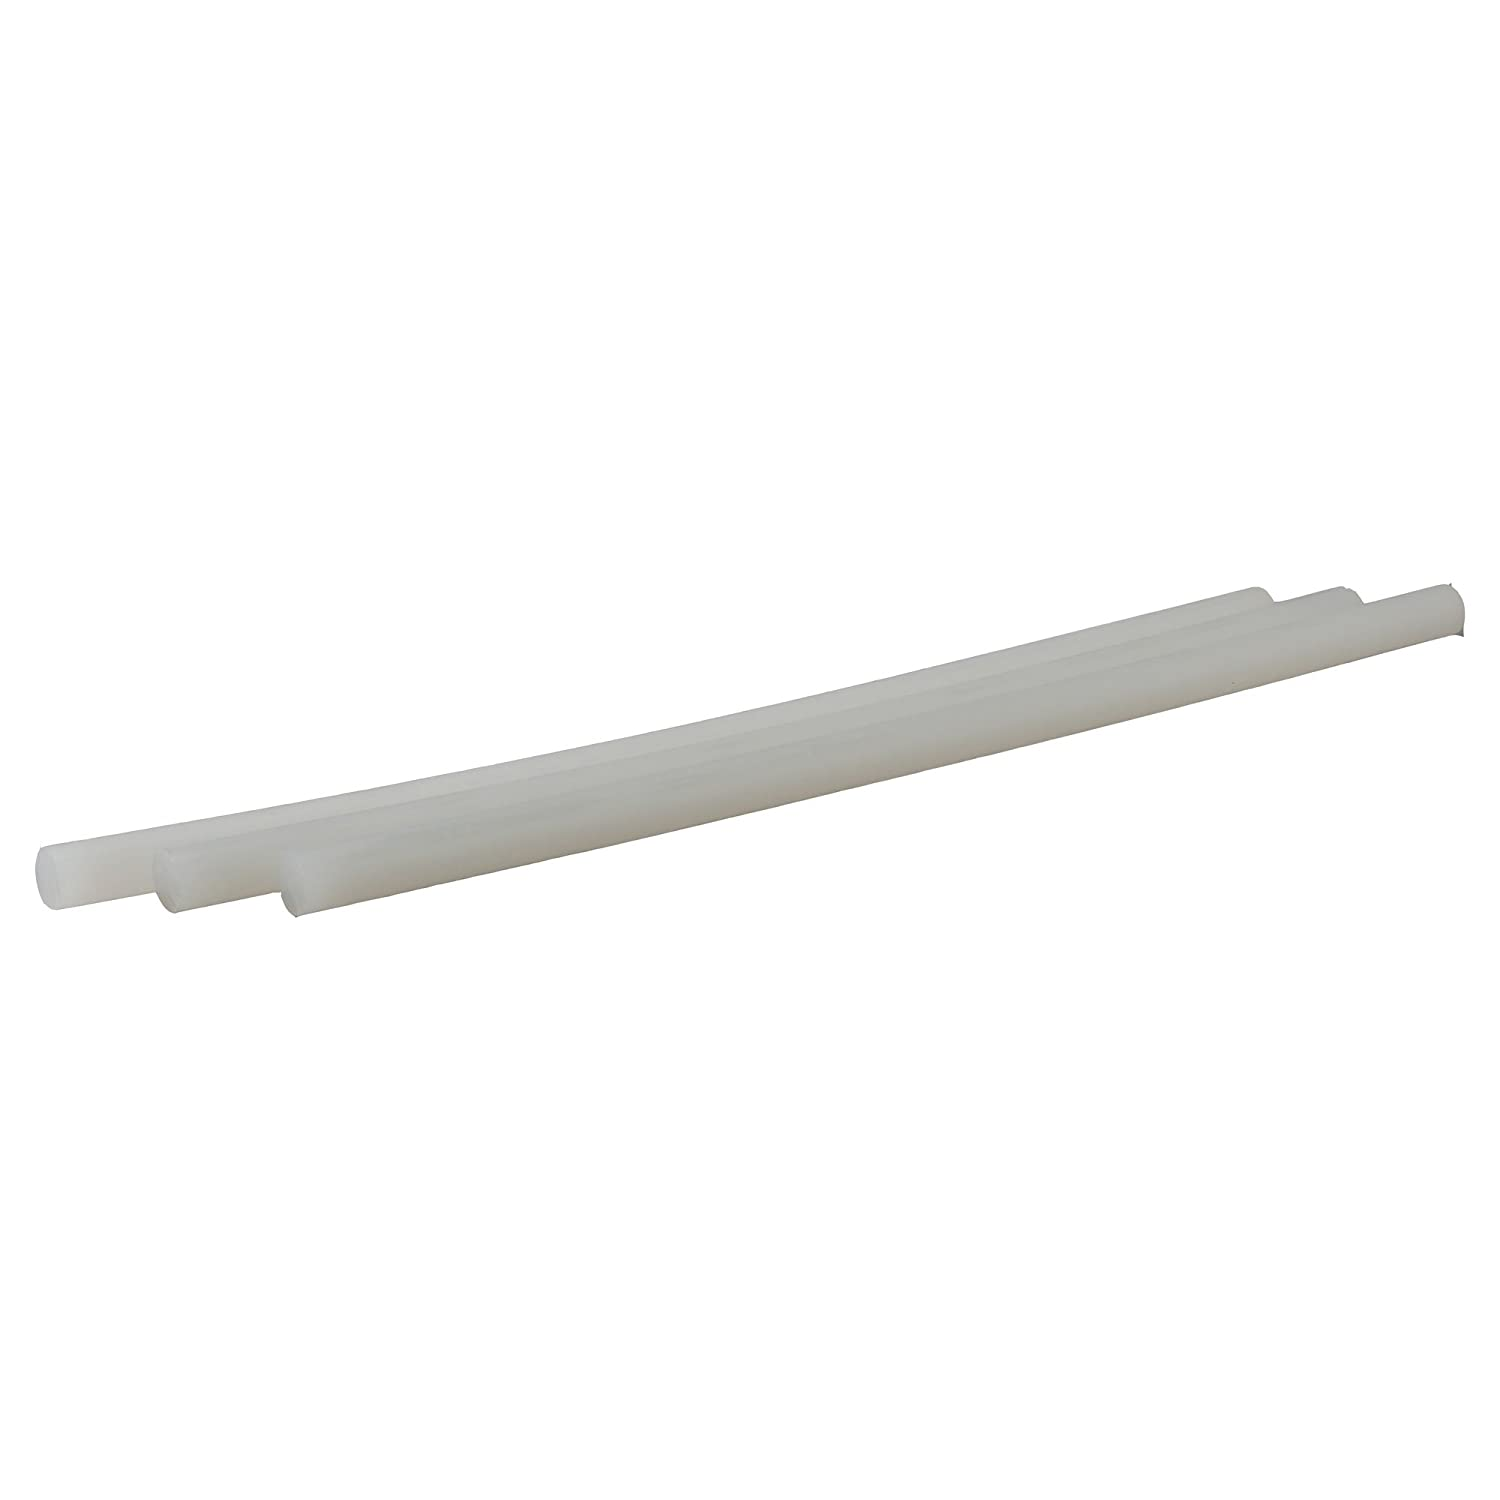 3M Hot Melt Adhesive 3764 AE Clear.45 in x 12 in 11 lb